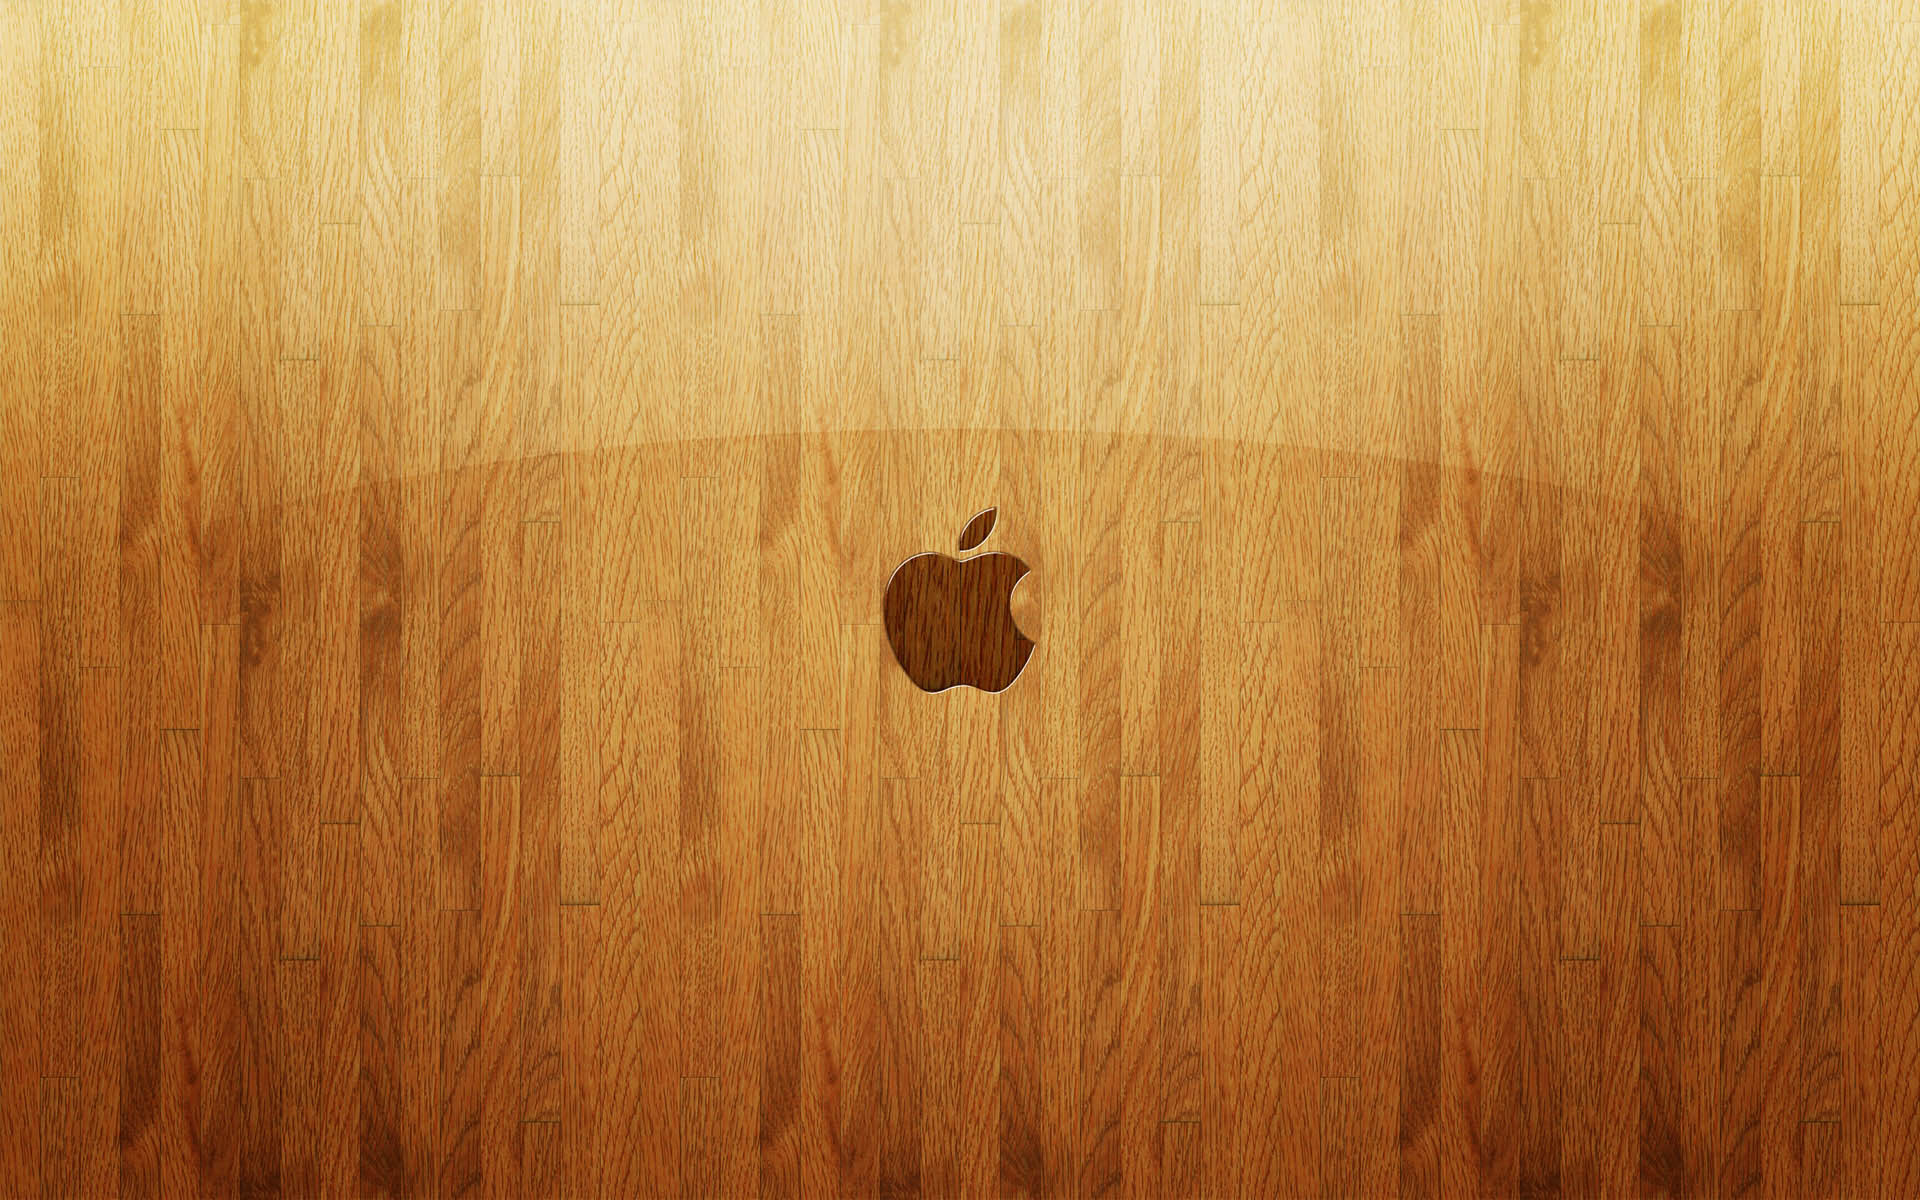 Apple Wooden Glass Wallpapers HD Wallpapers 1920x1200